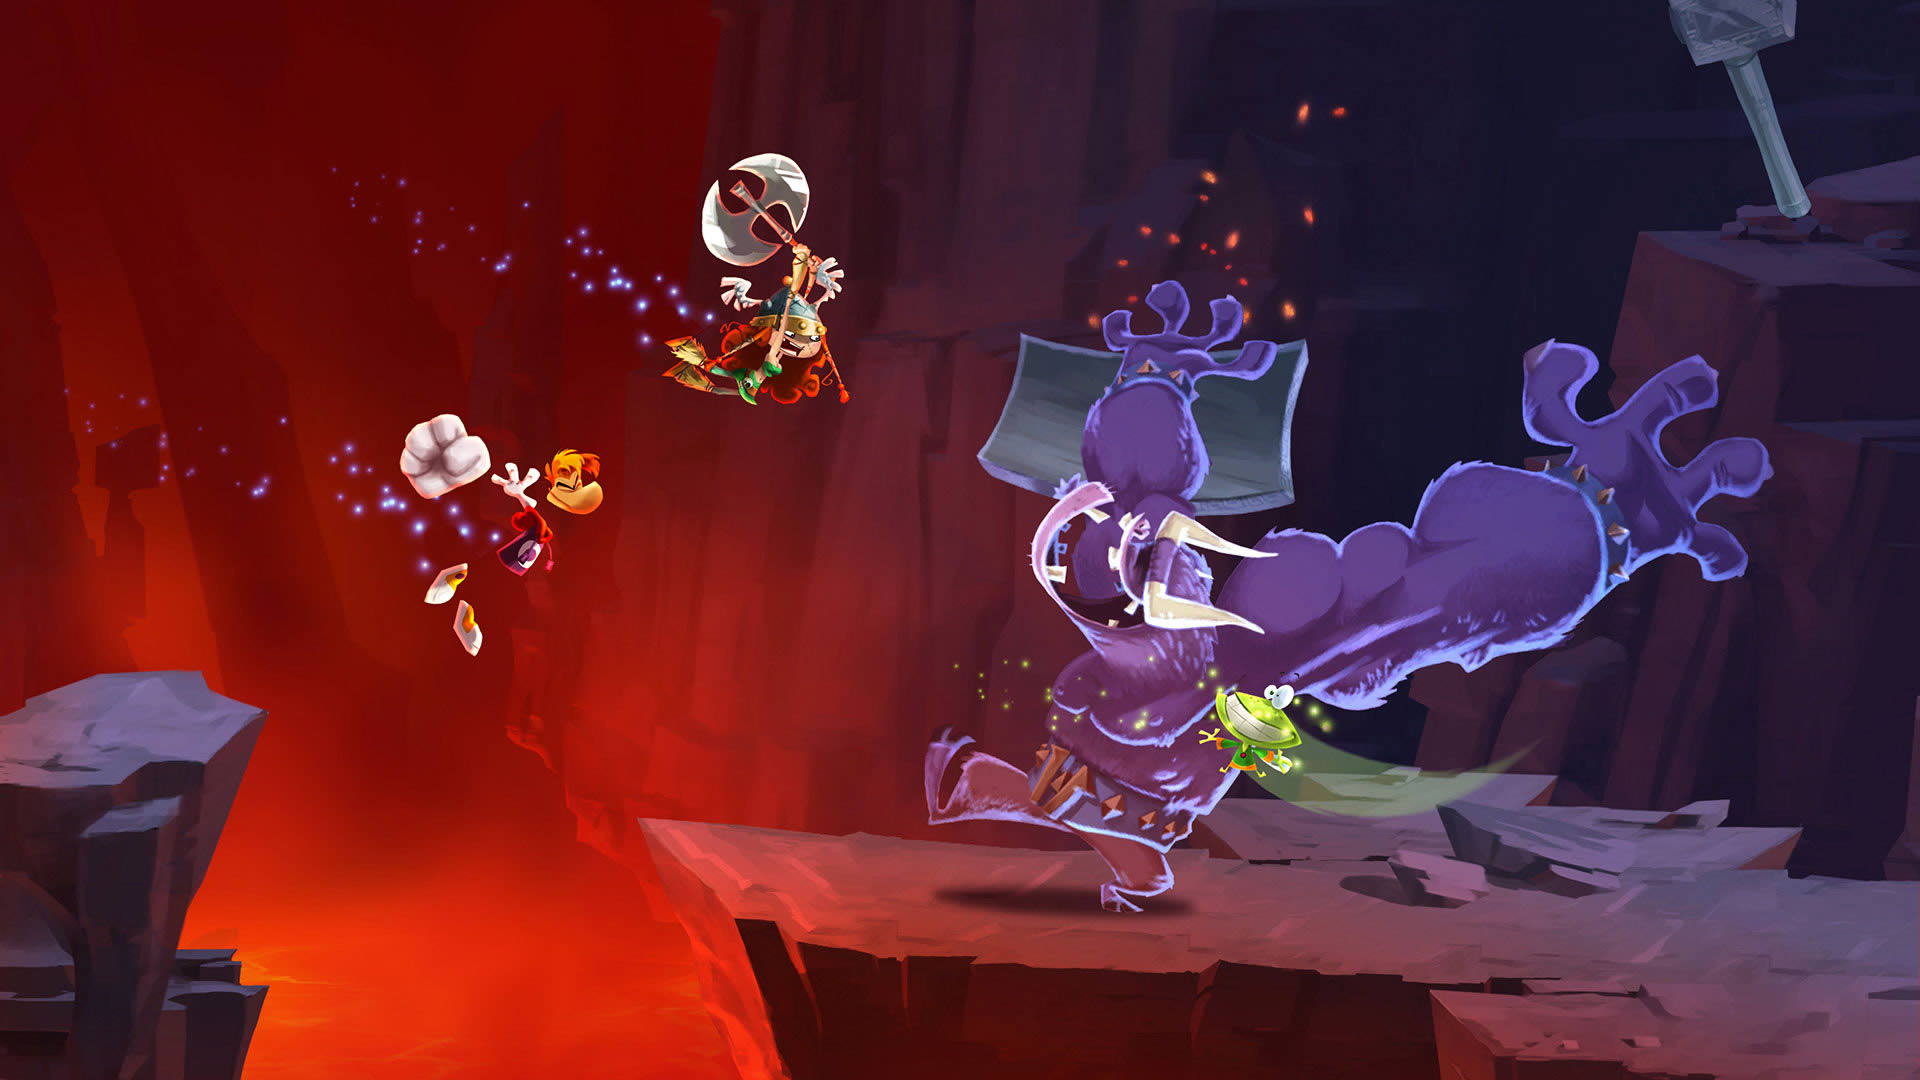 rayman legends video game wallpaper 46396